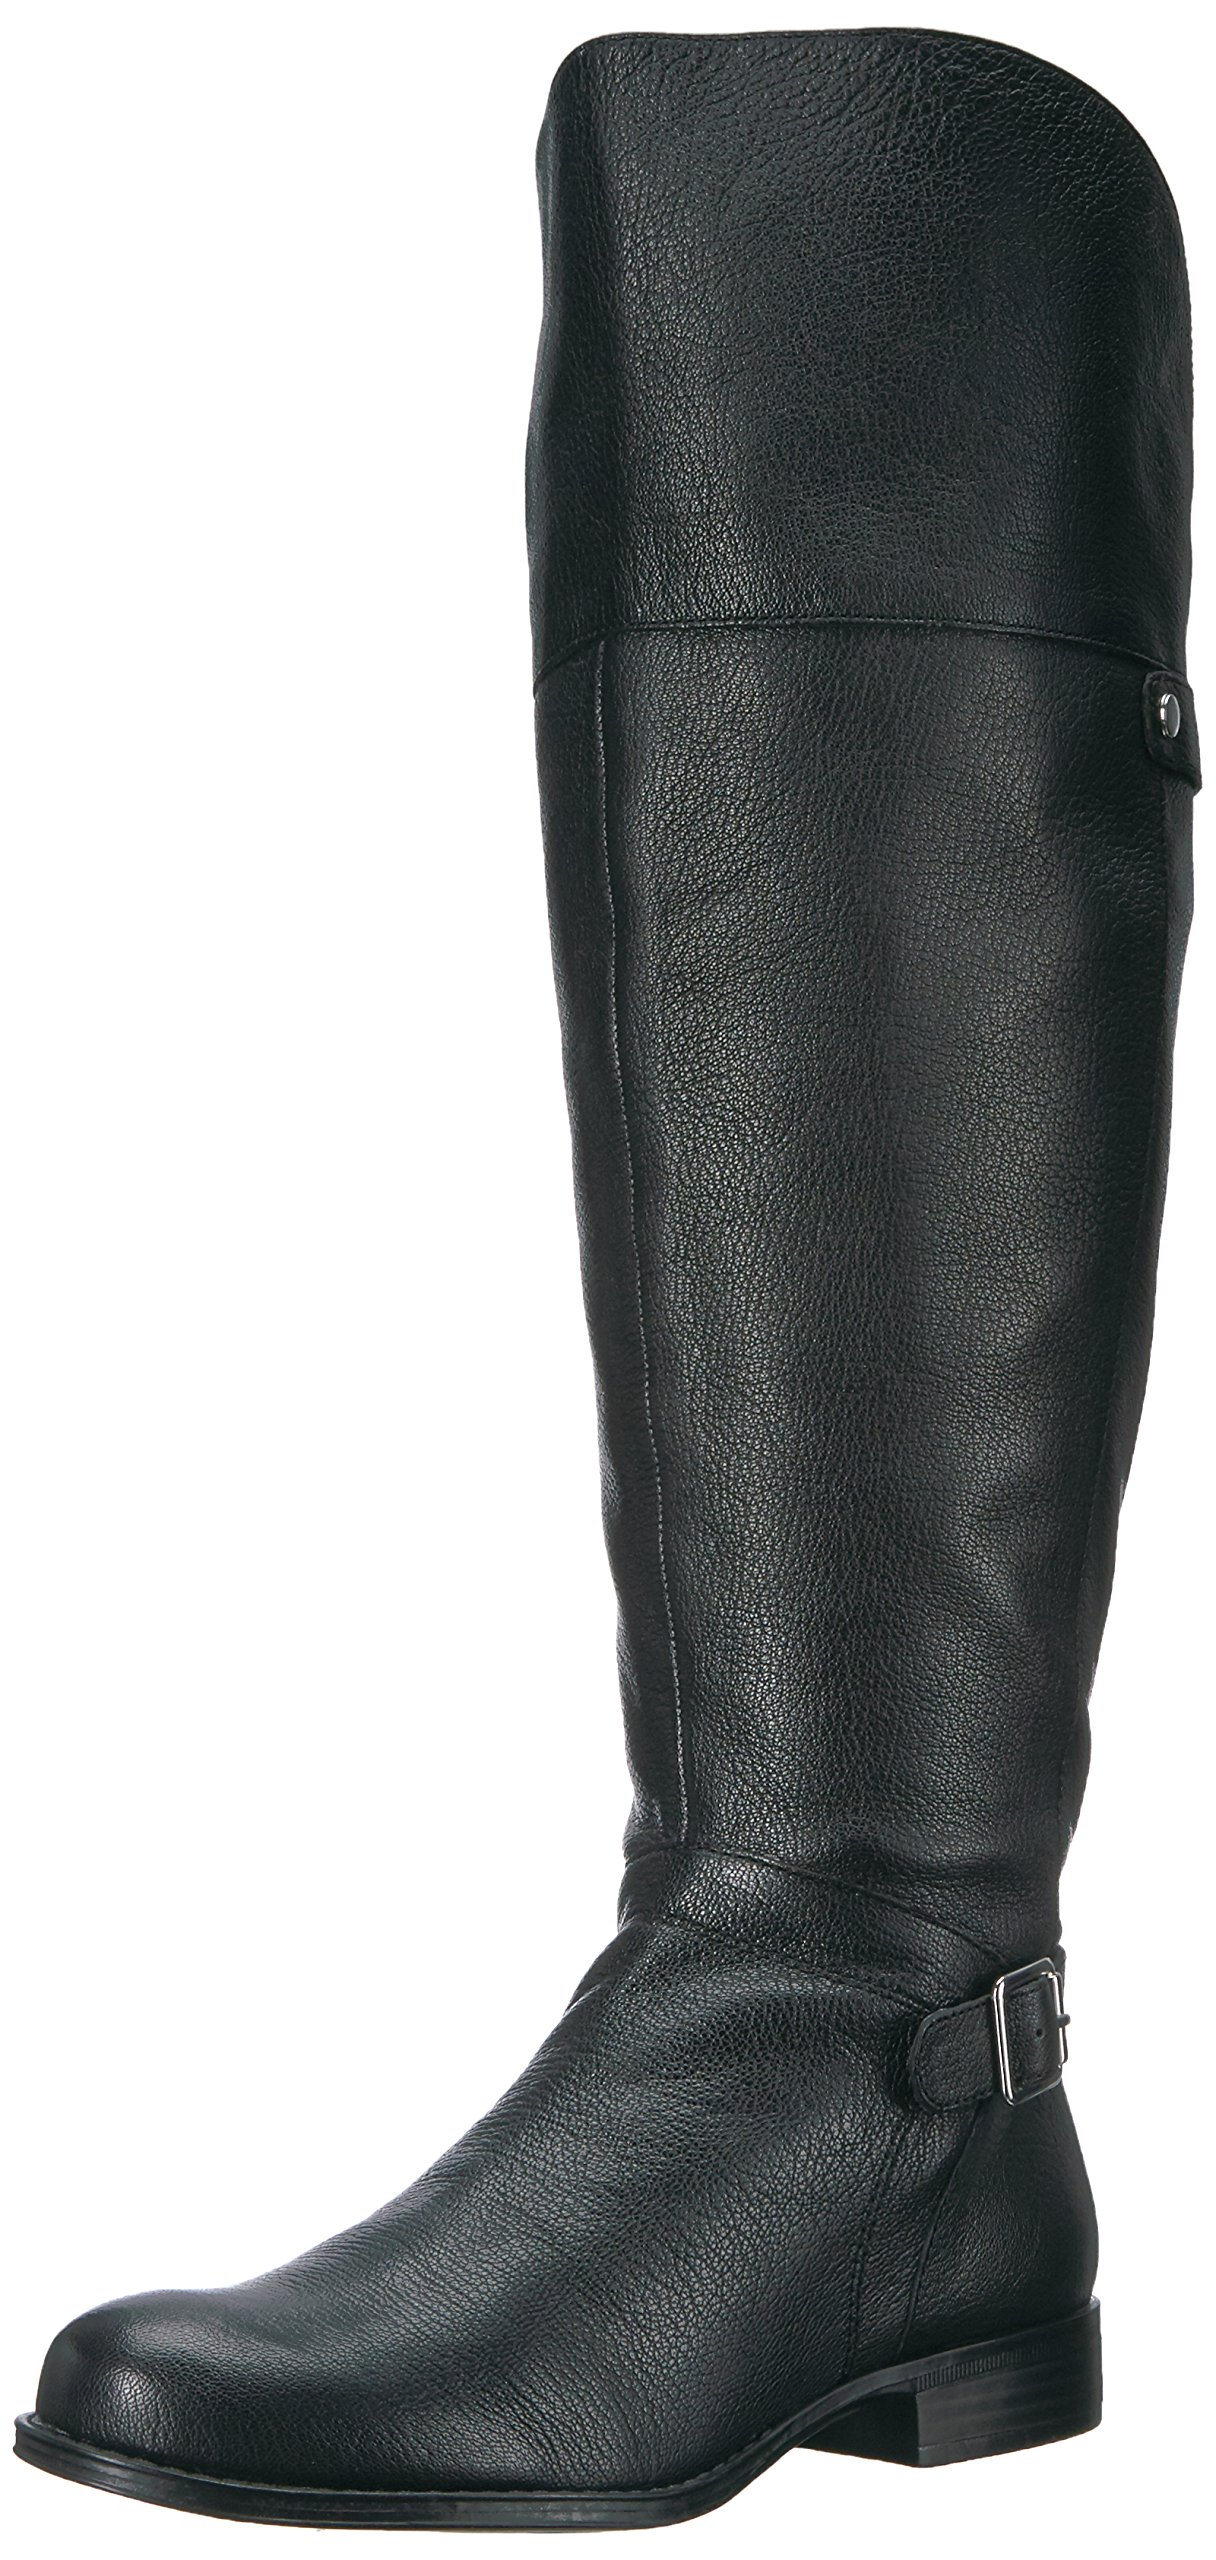 Naturalizer Women's January Wc Riding Boot, Black, 11 2W US